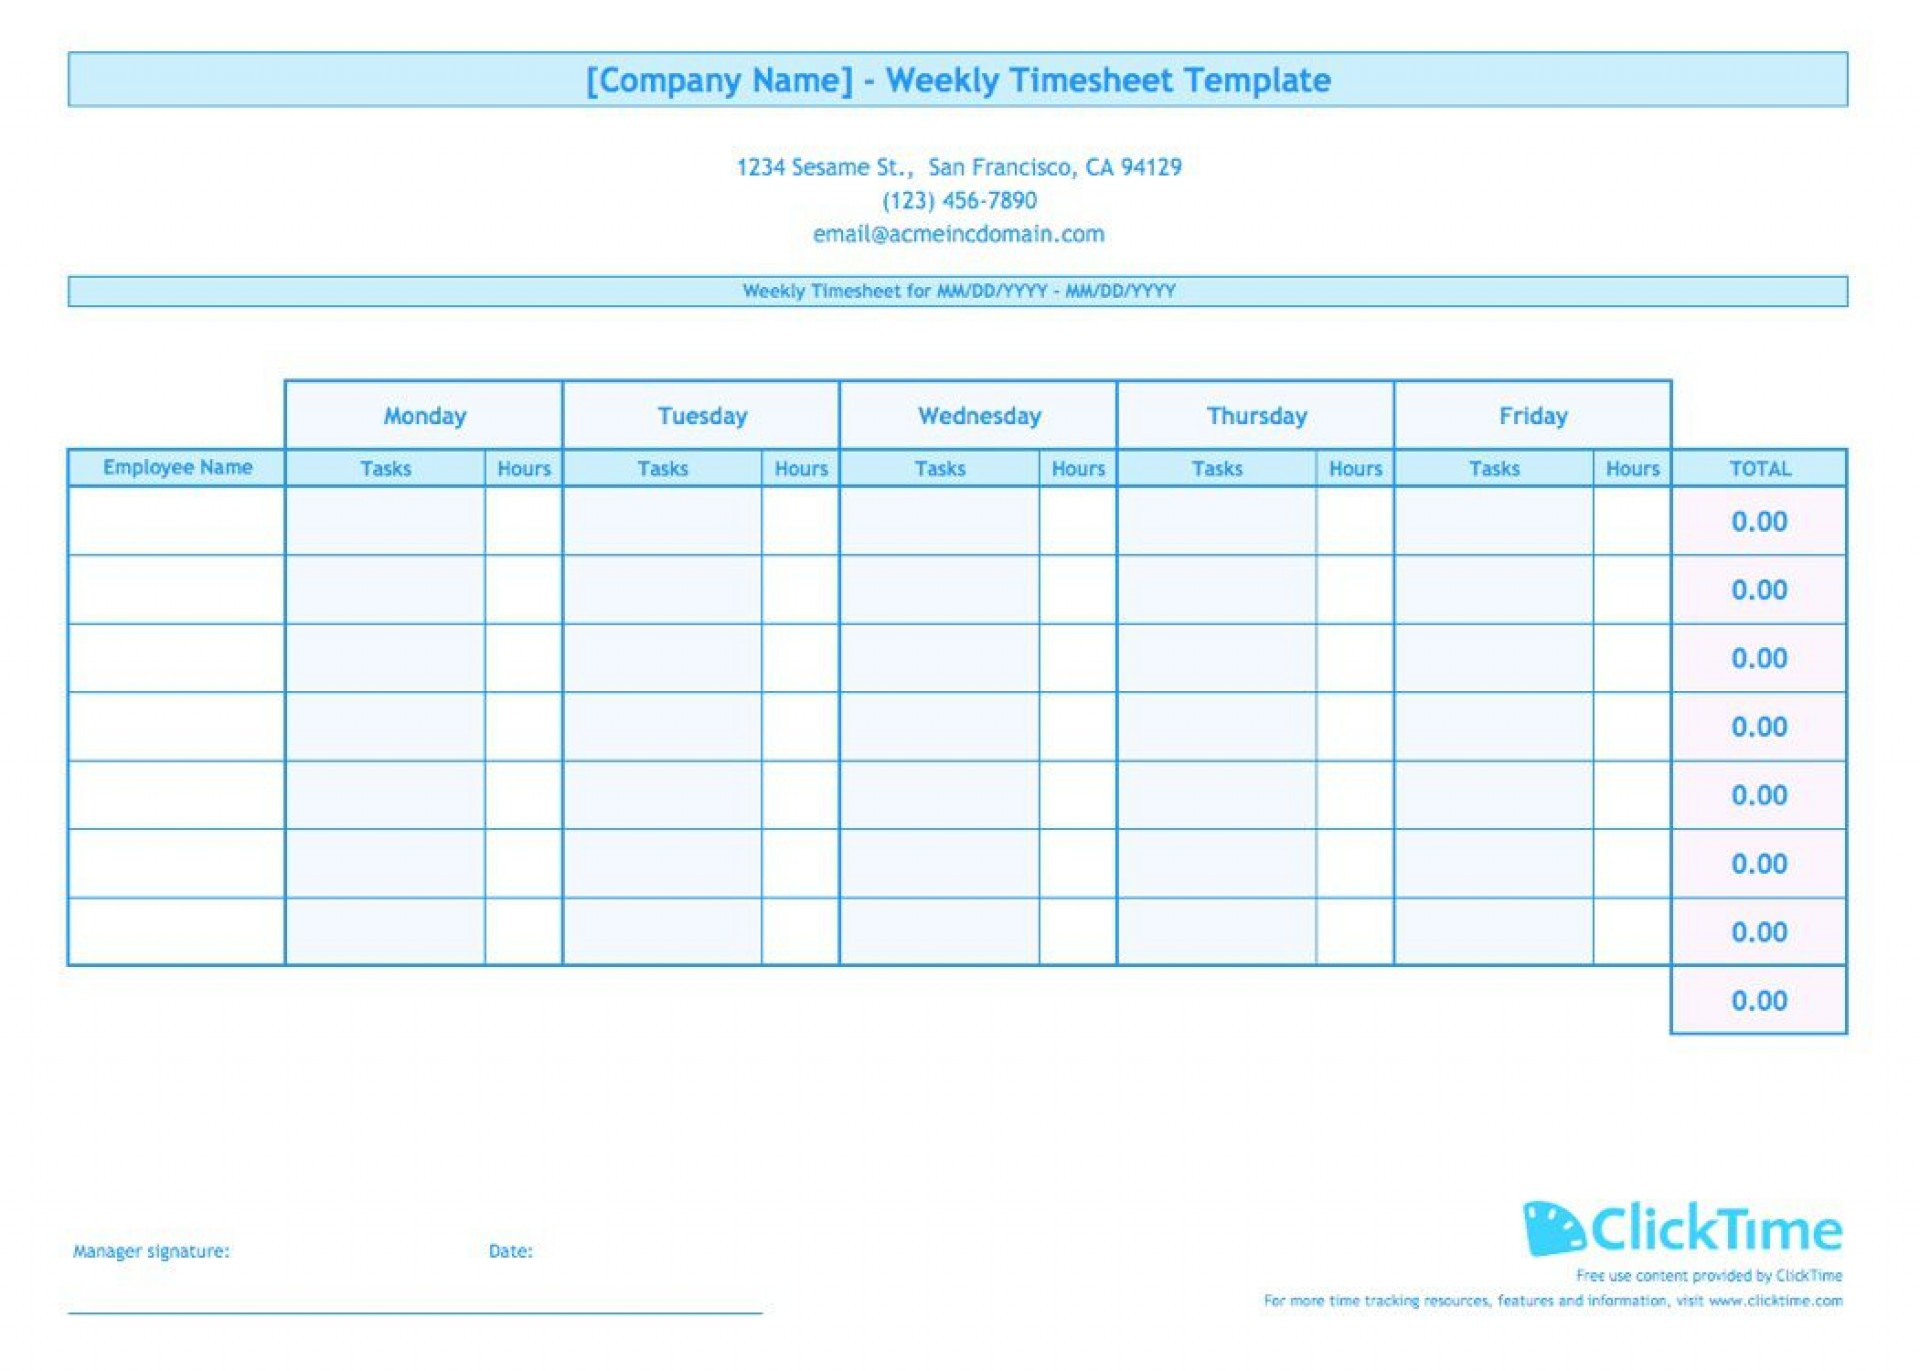 008 Impressive Free Weekly Timesheet Template Sample  For Multiple Employee Biweekly Excel With Formula1920